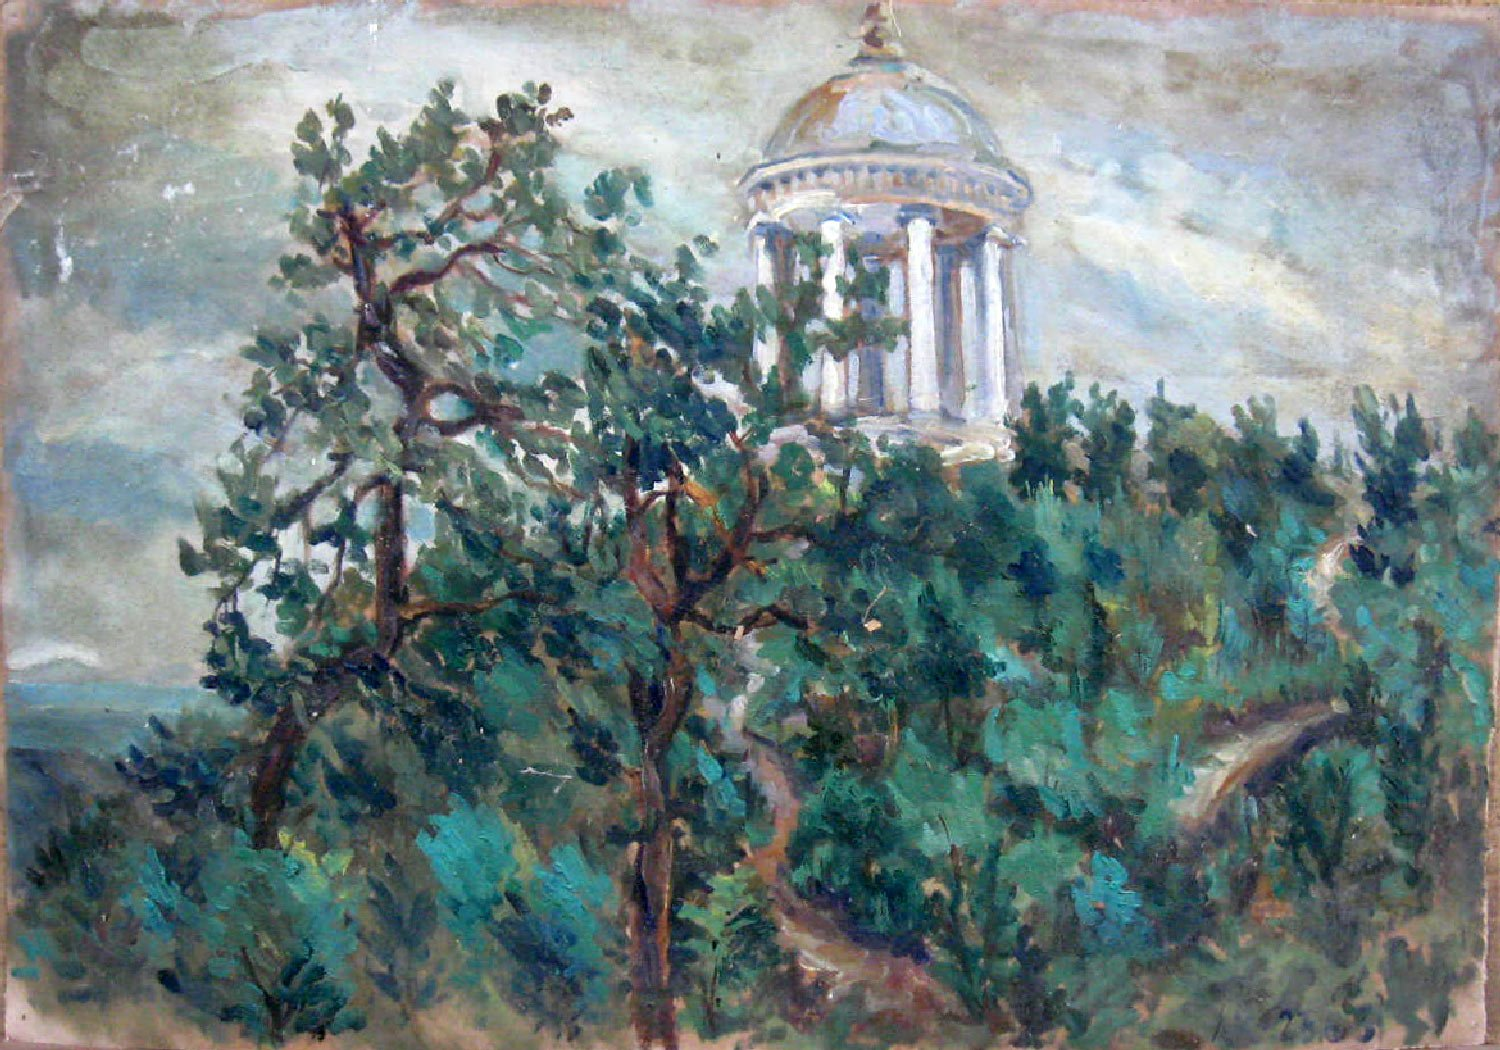 Landscape Painting Original paper oil Soviet of the USSR Ukraine Europe Realism Impressionism